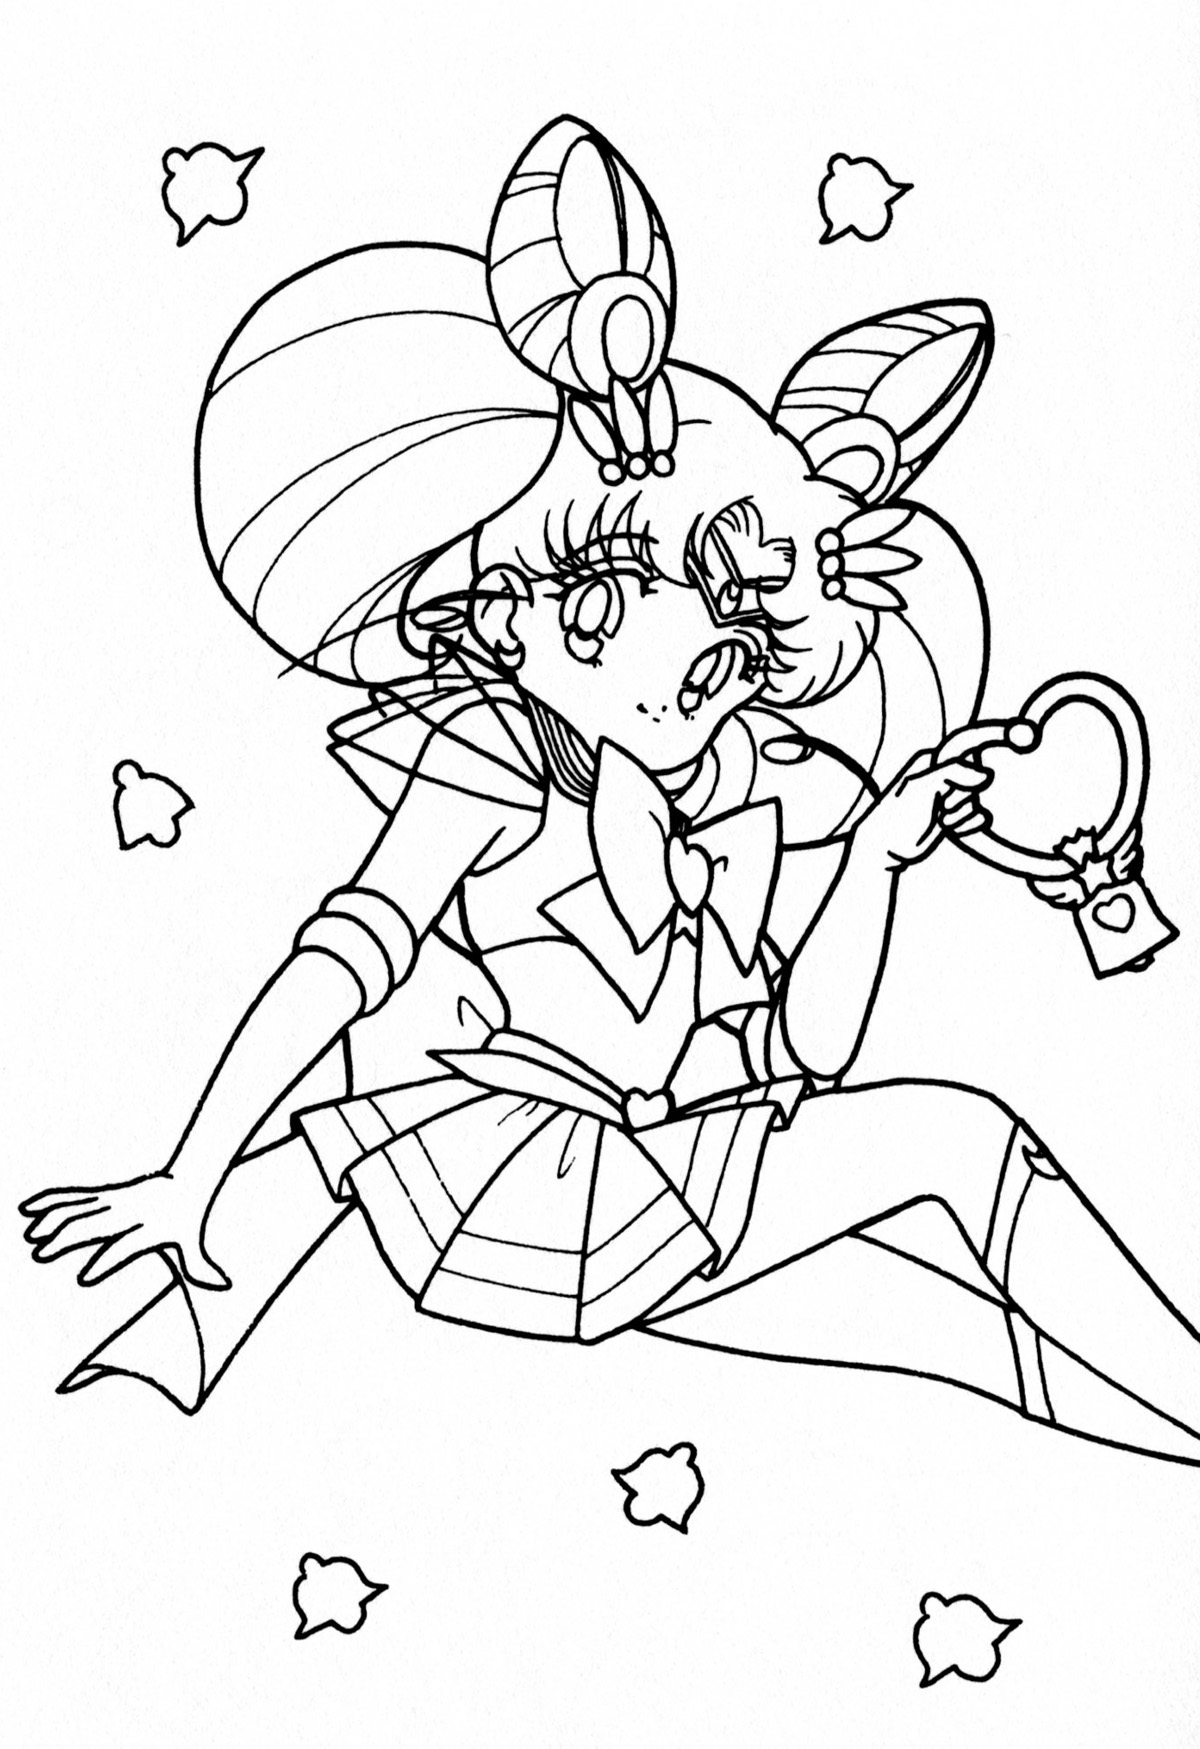 Cartoons Coloring Pages: Sailor Moon Coloring Pages | 1749x1200